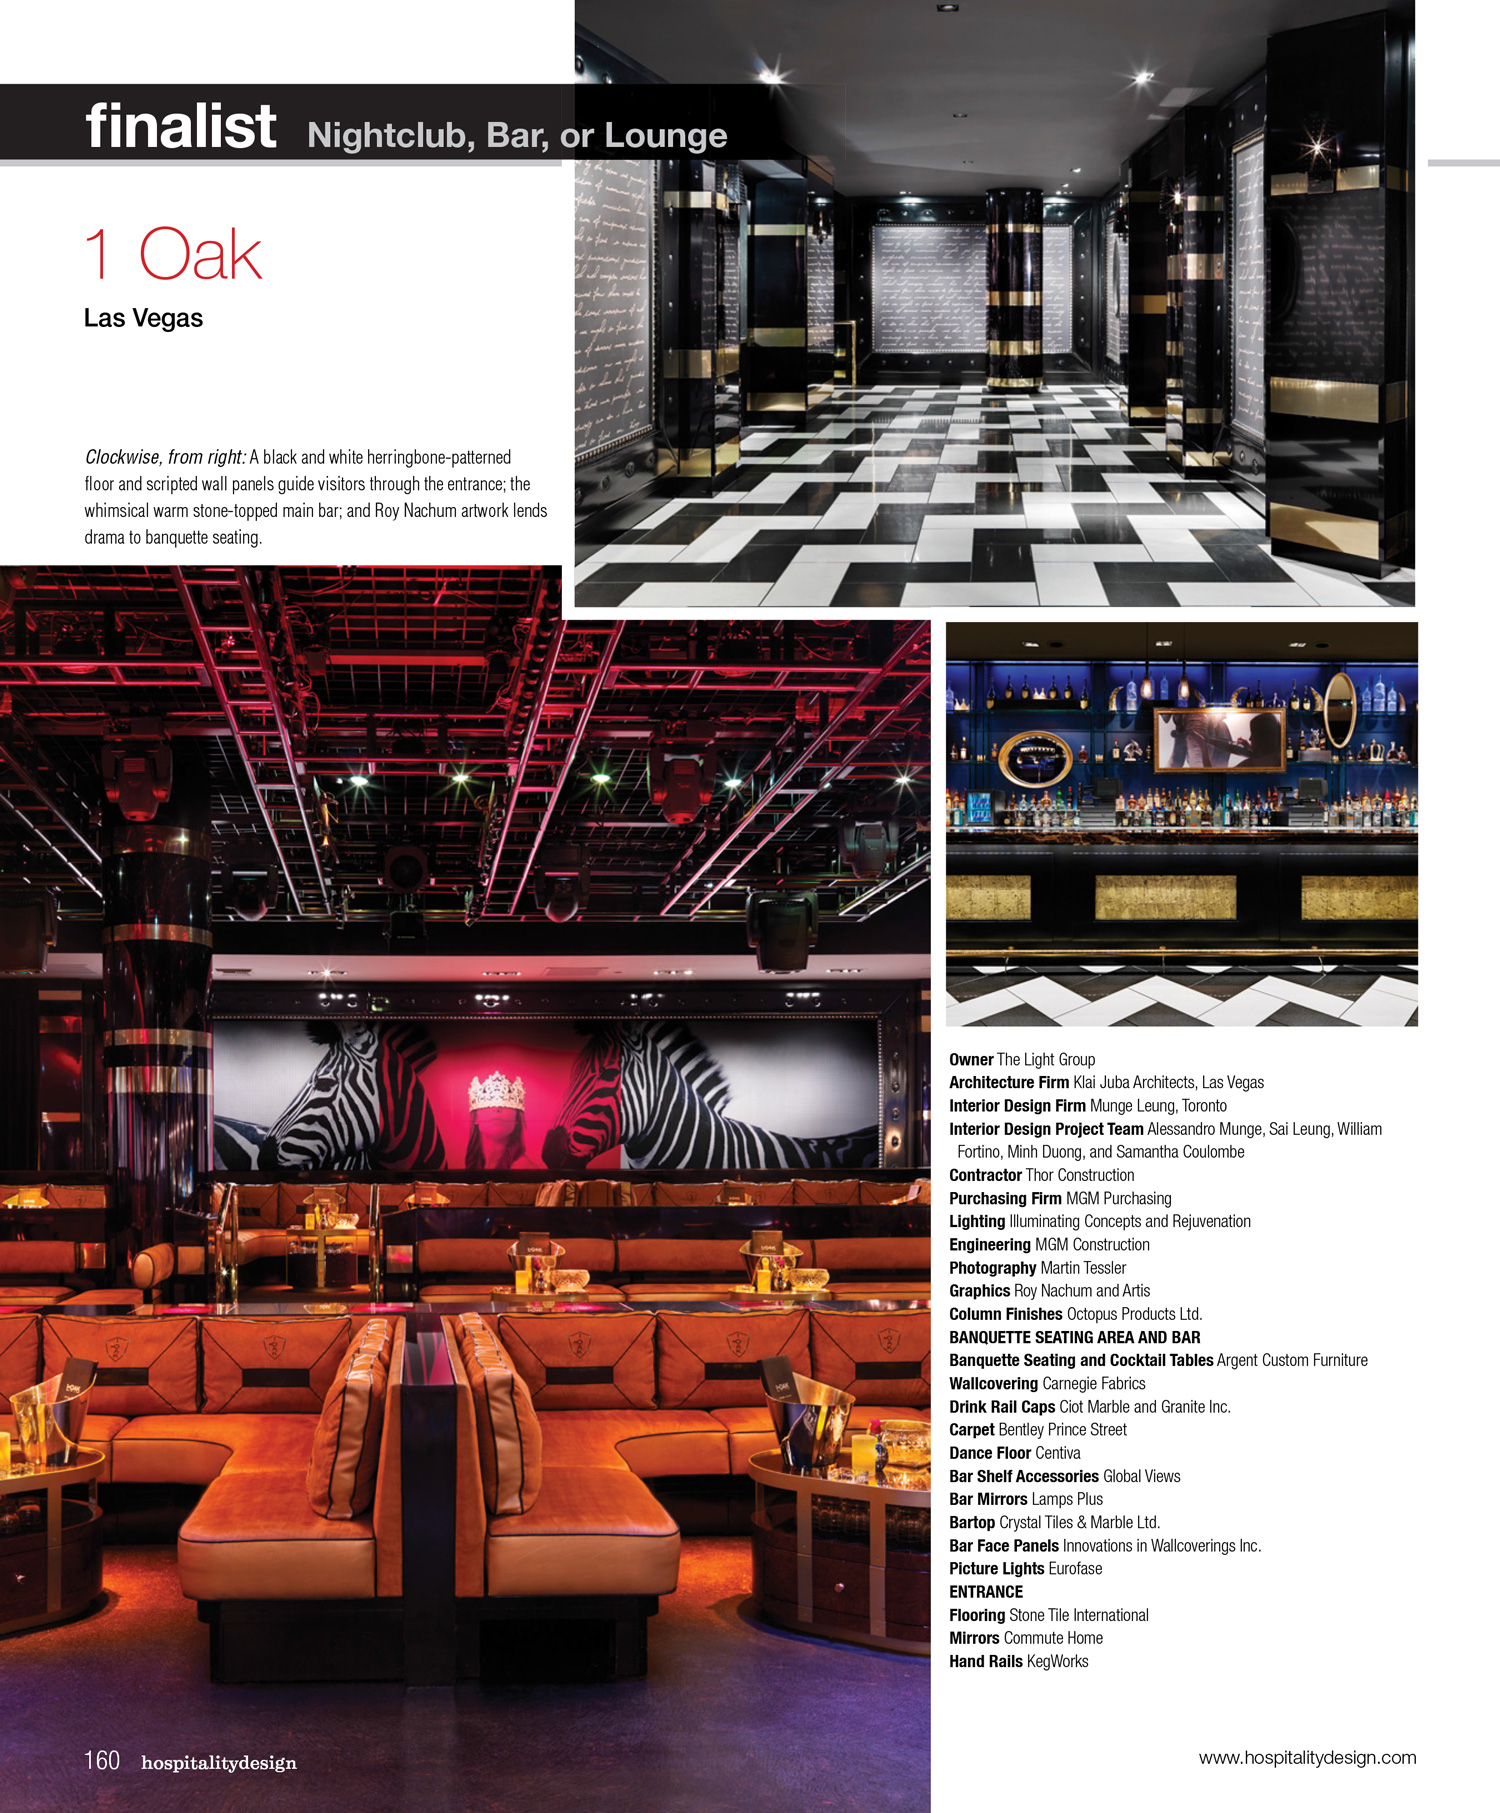 Hospitality Design Awards 2012 Finalist  Nightclub, Bar, or Lounge